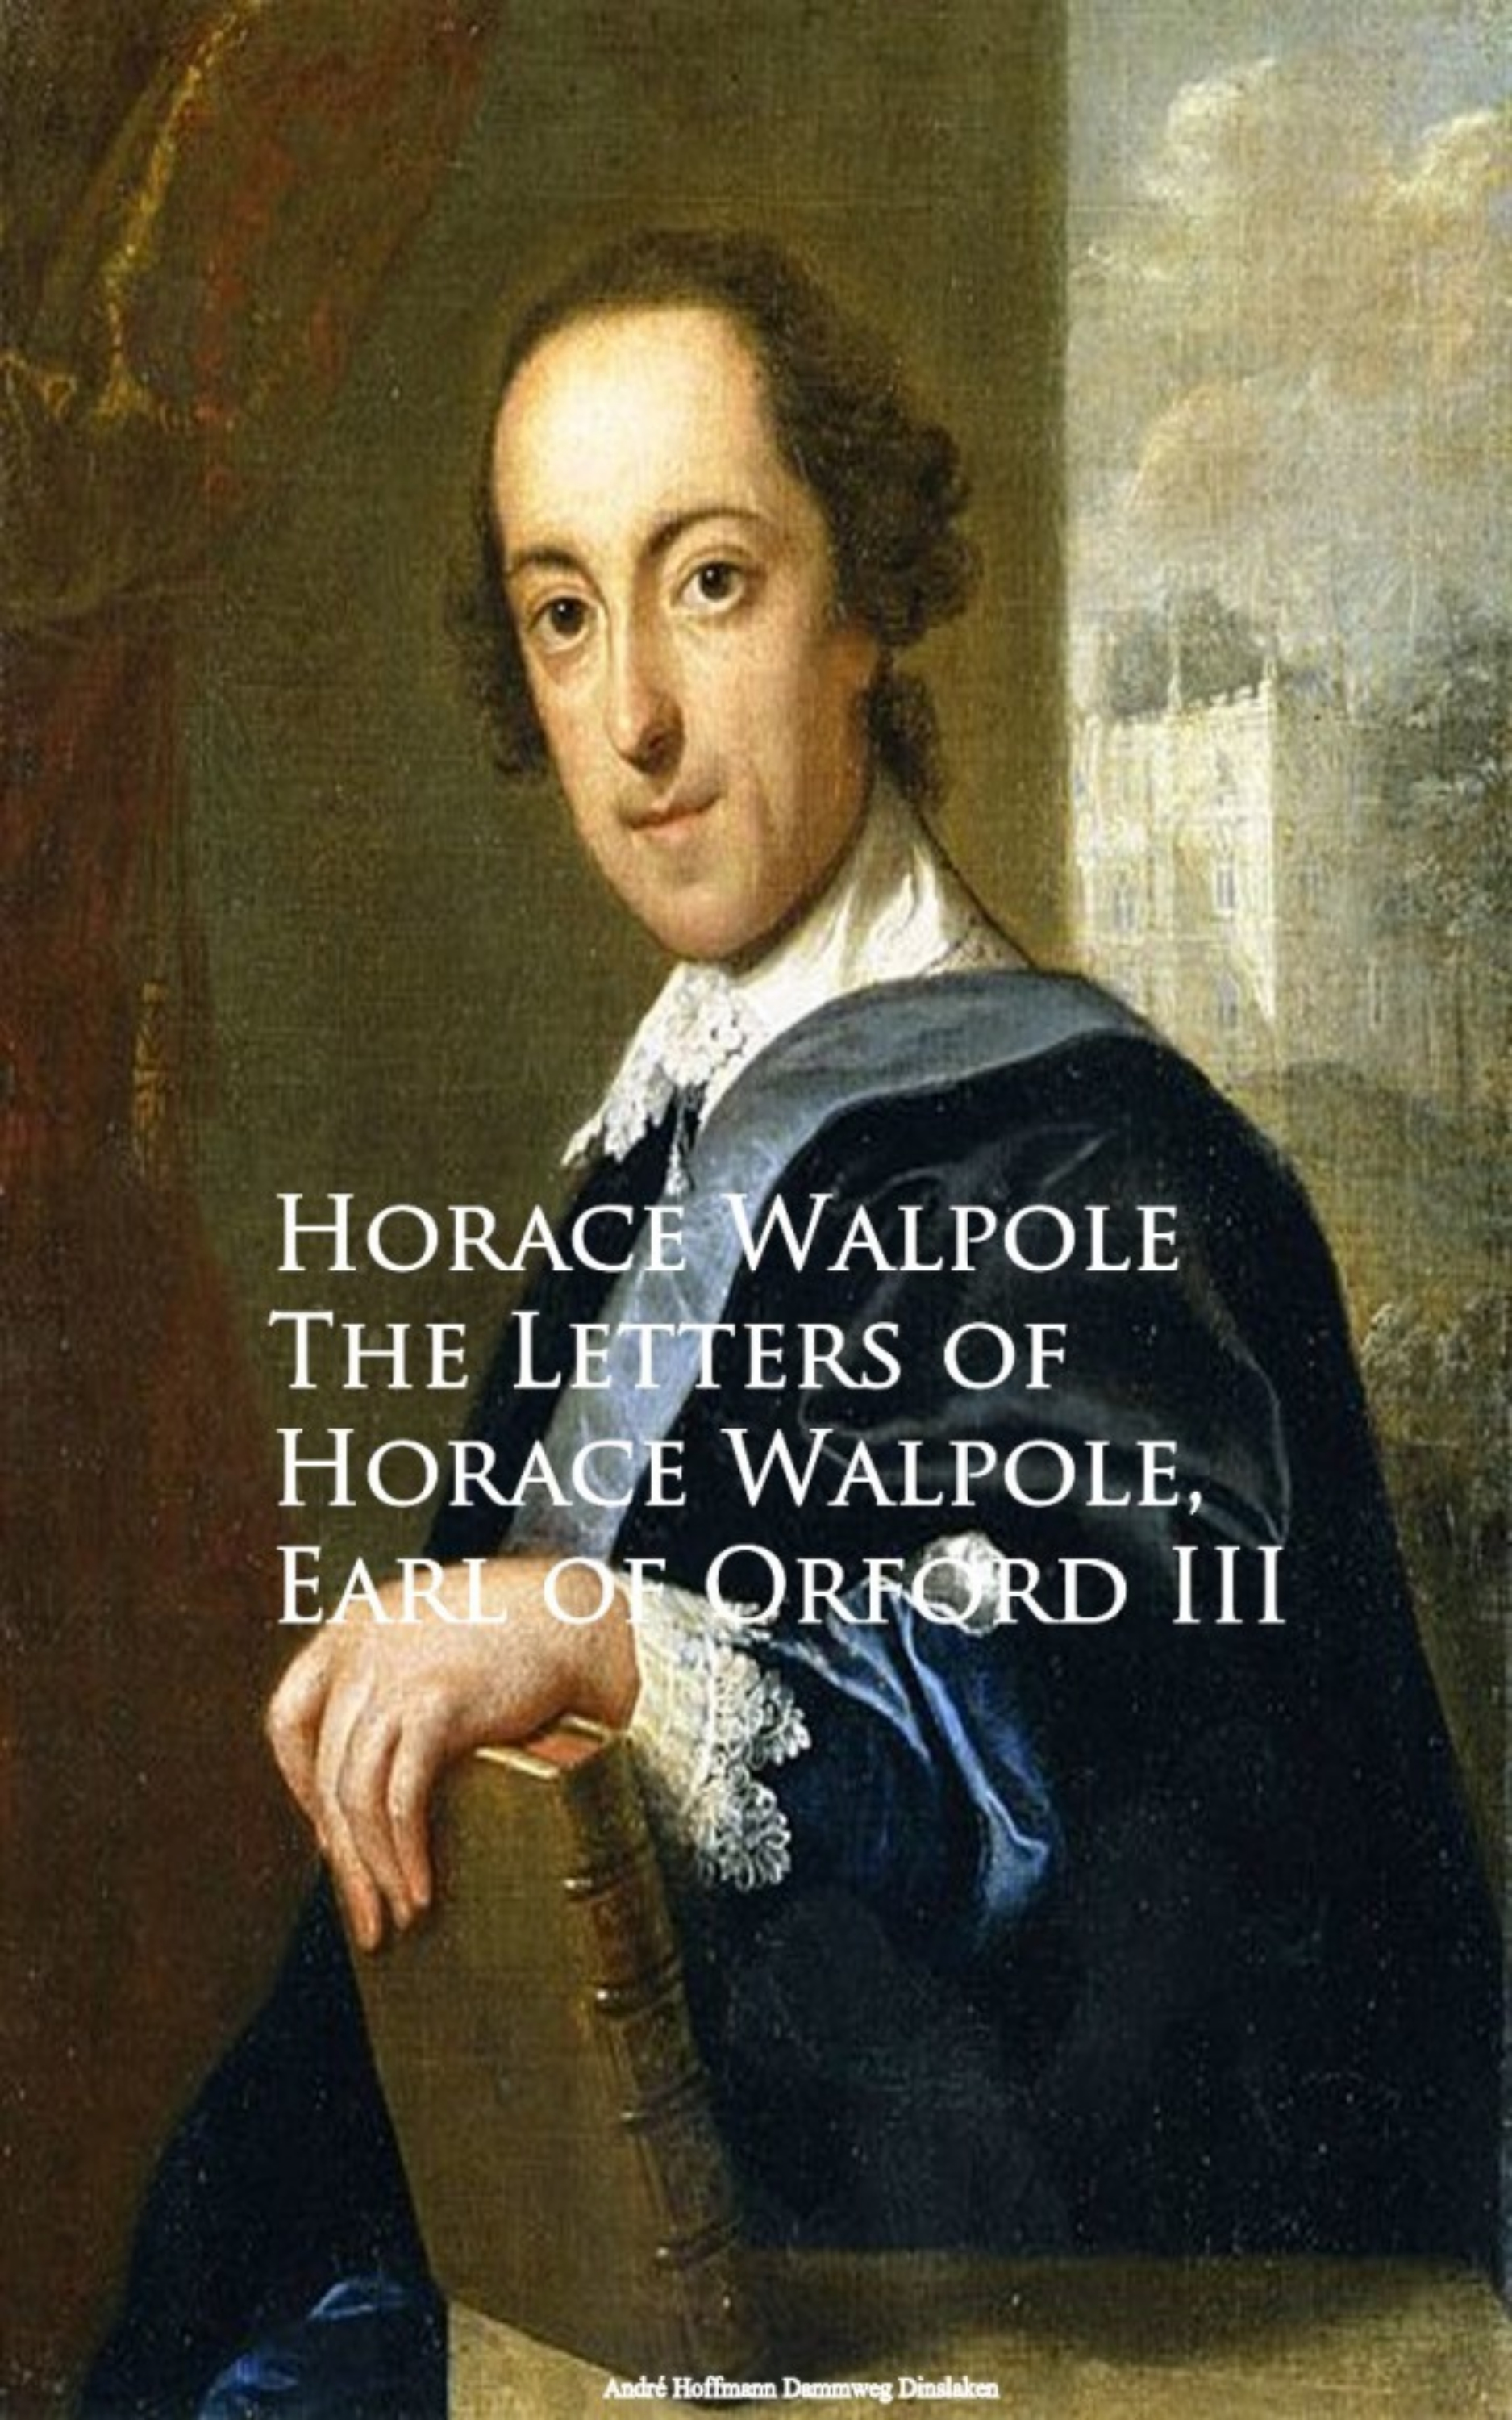 Horace Walpole The Letters of Horace Walpole, Earl of Orford III fletcher horace a b c of snap shooting